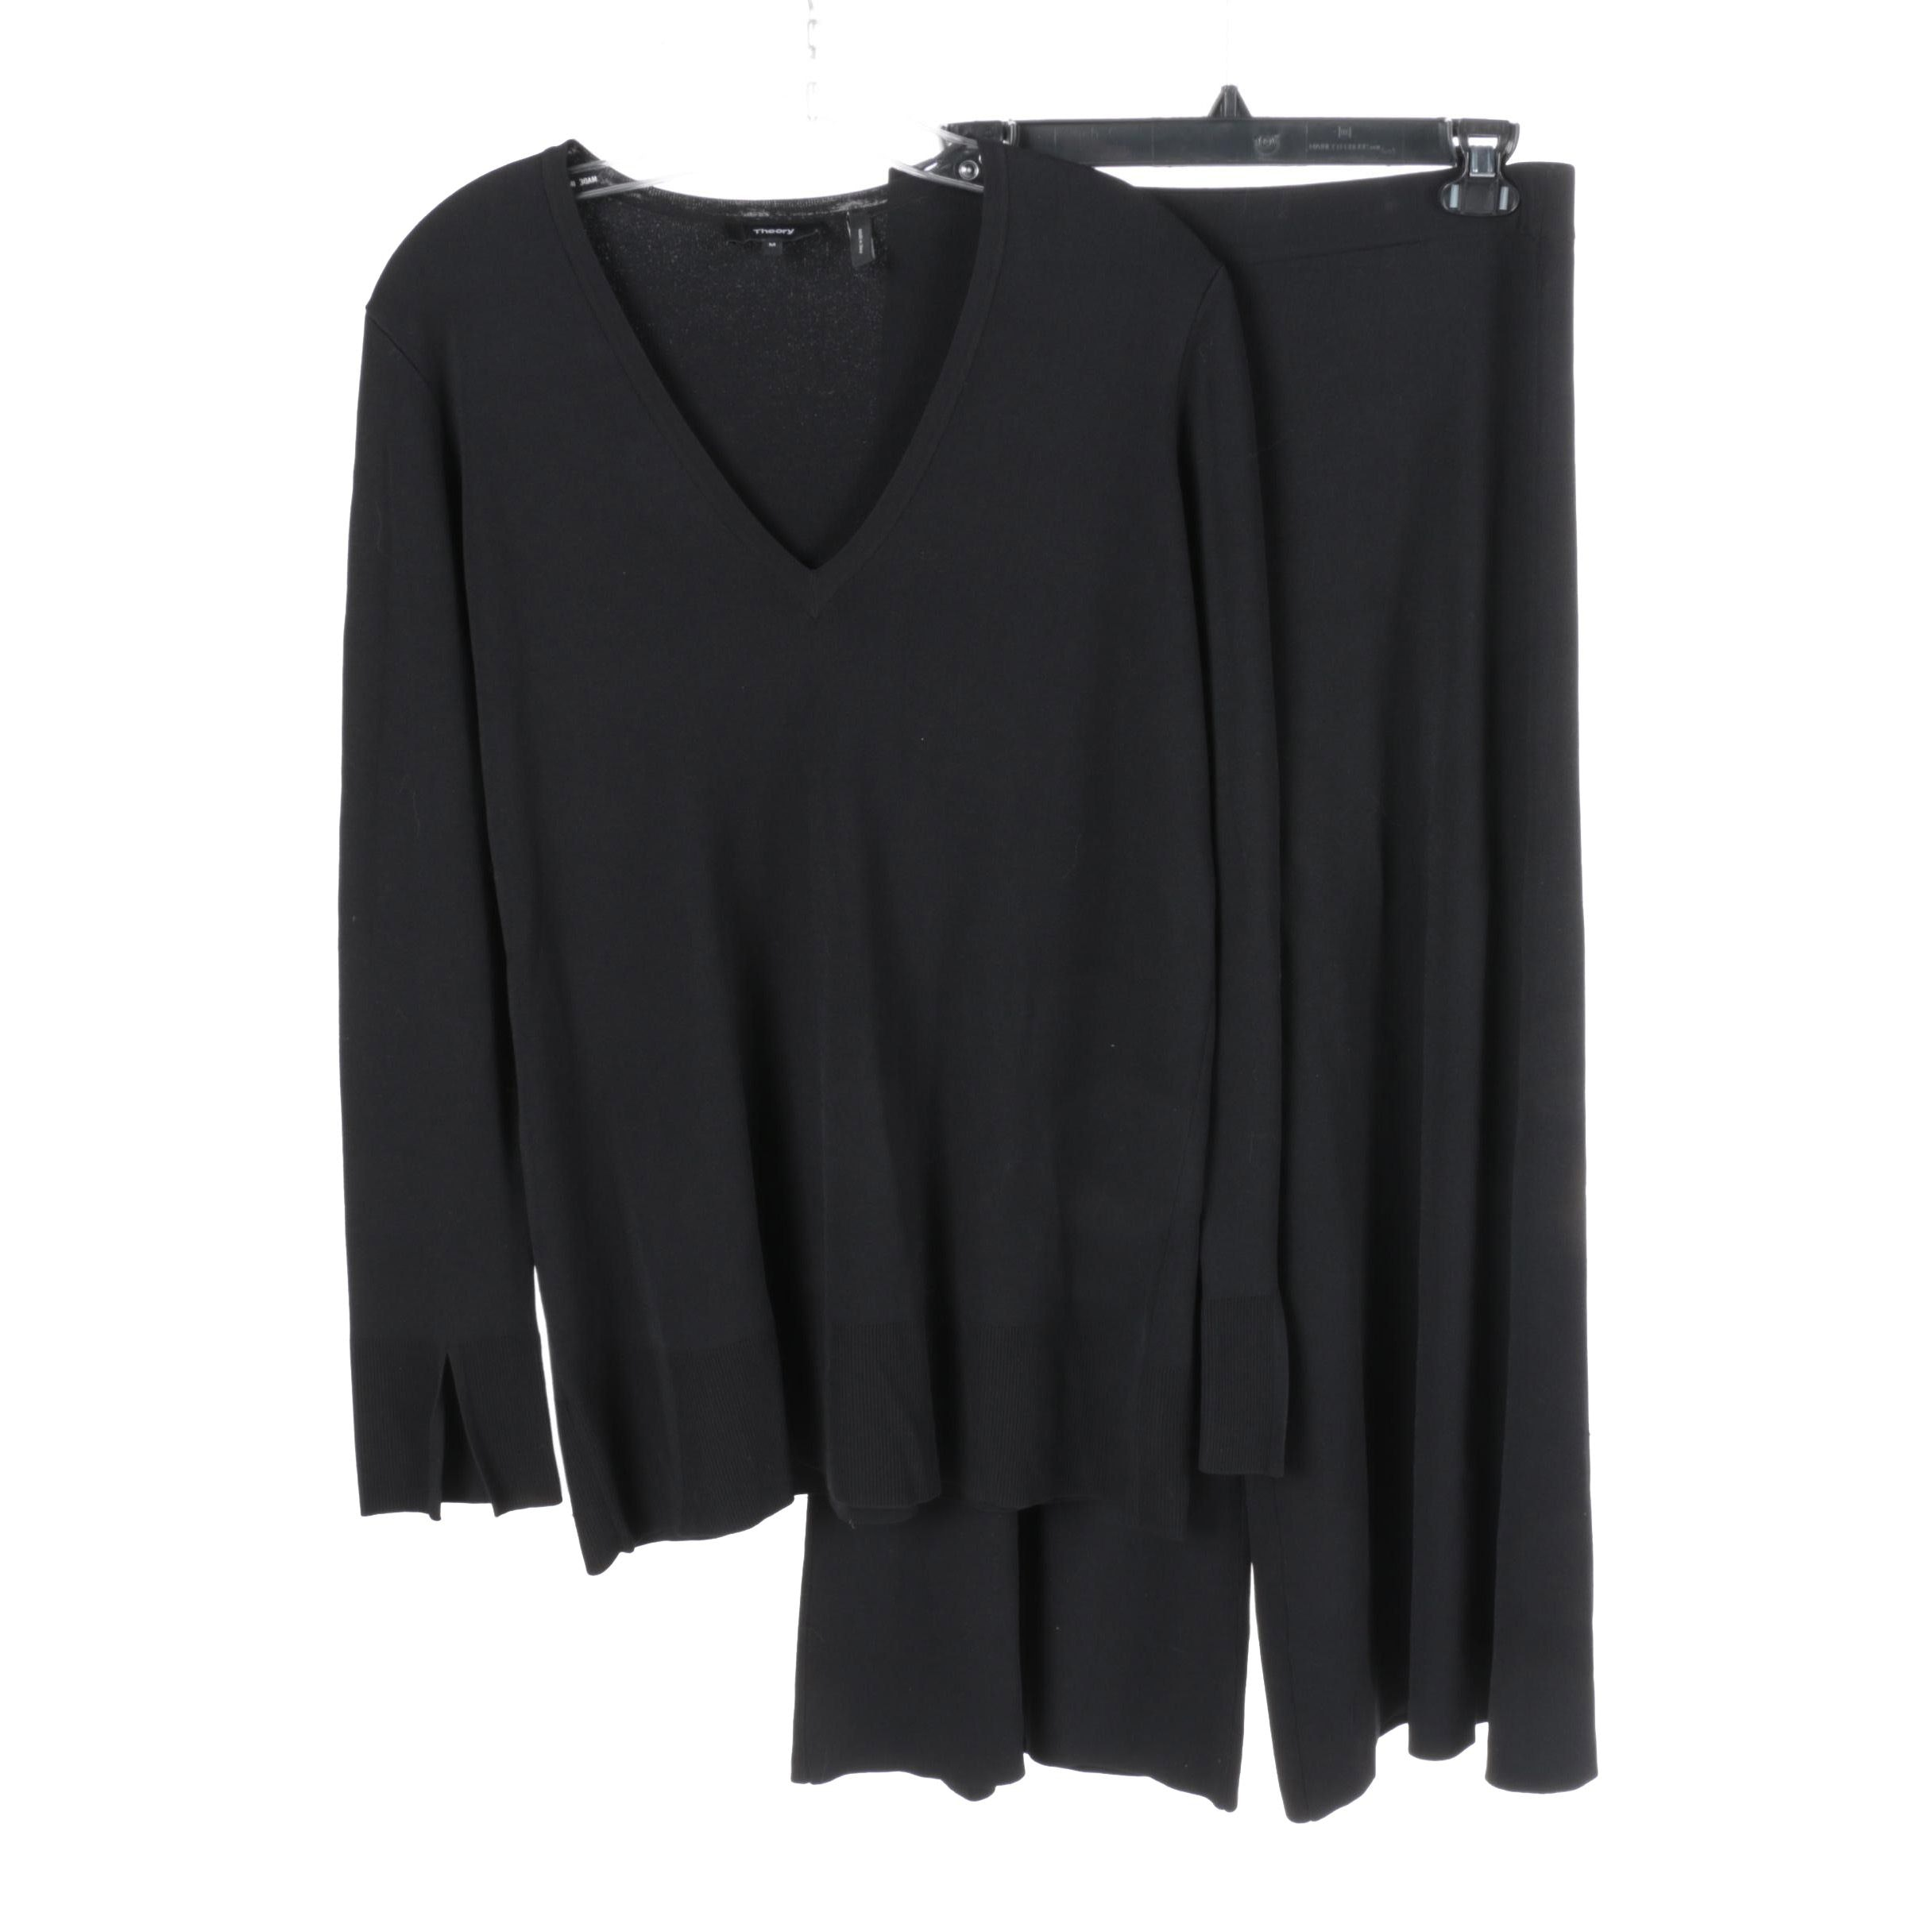 Women's Theory Top and Pants